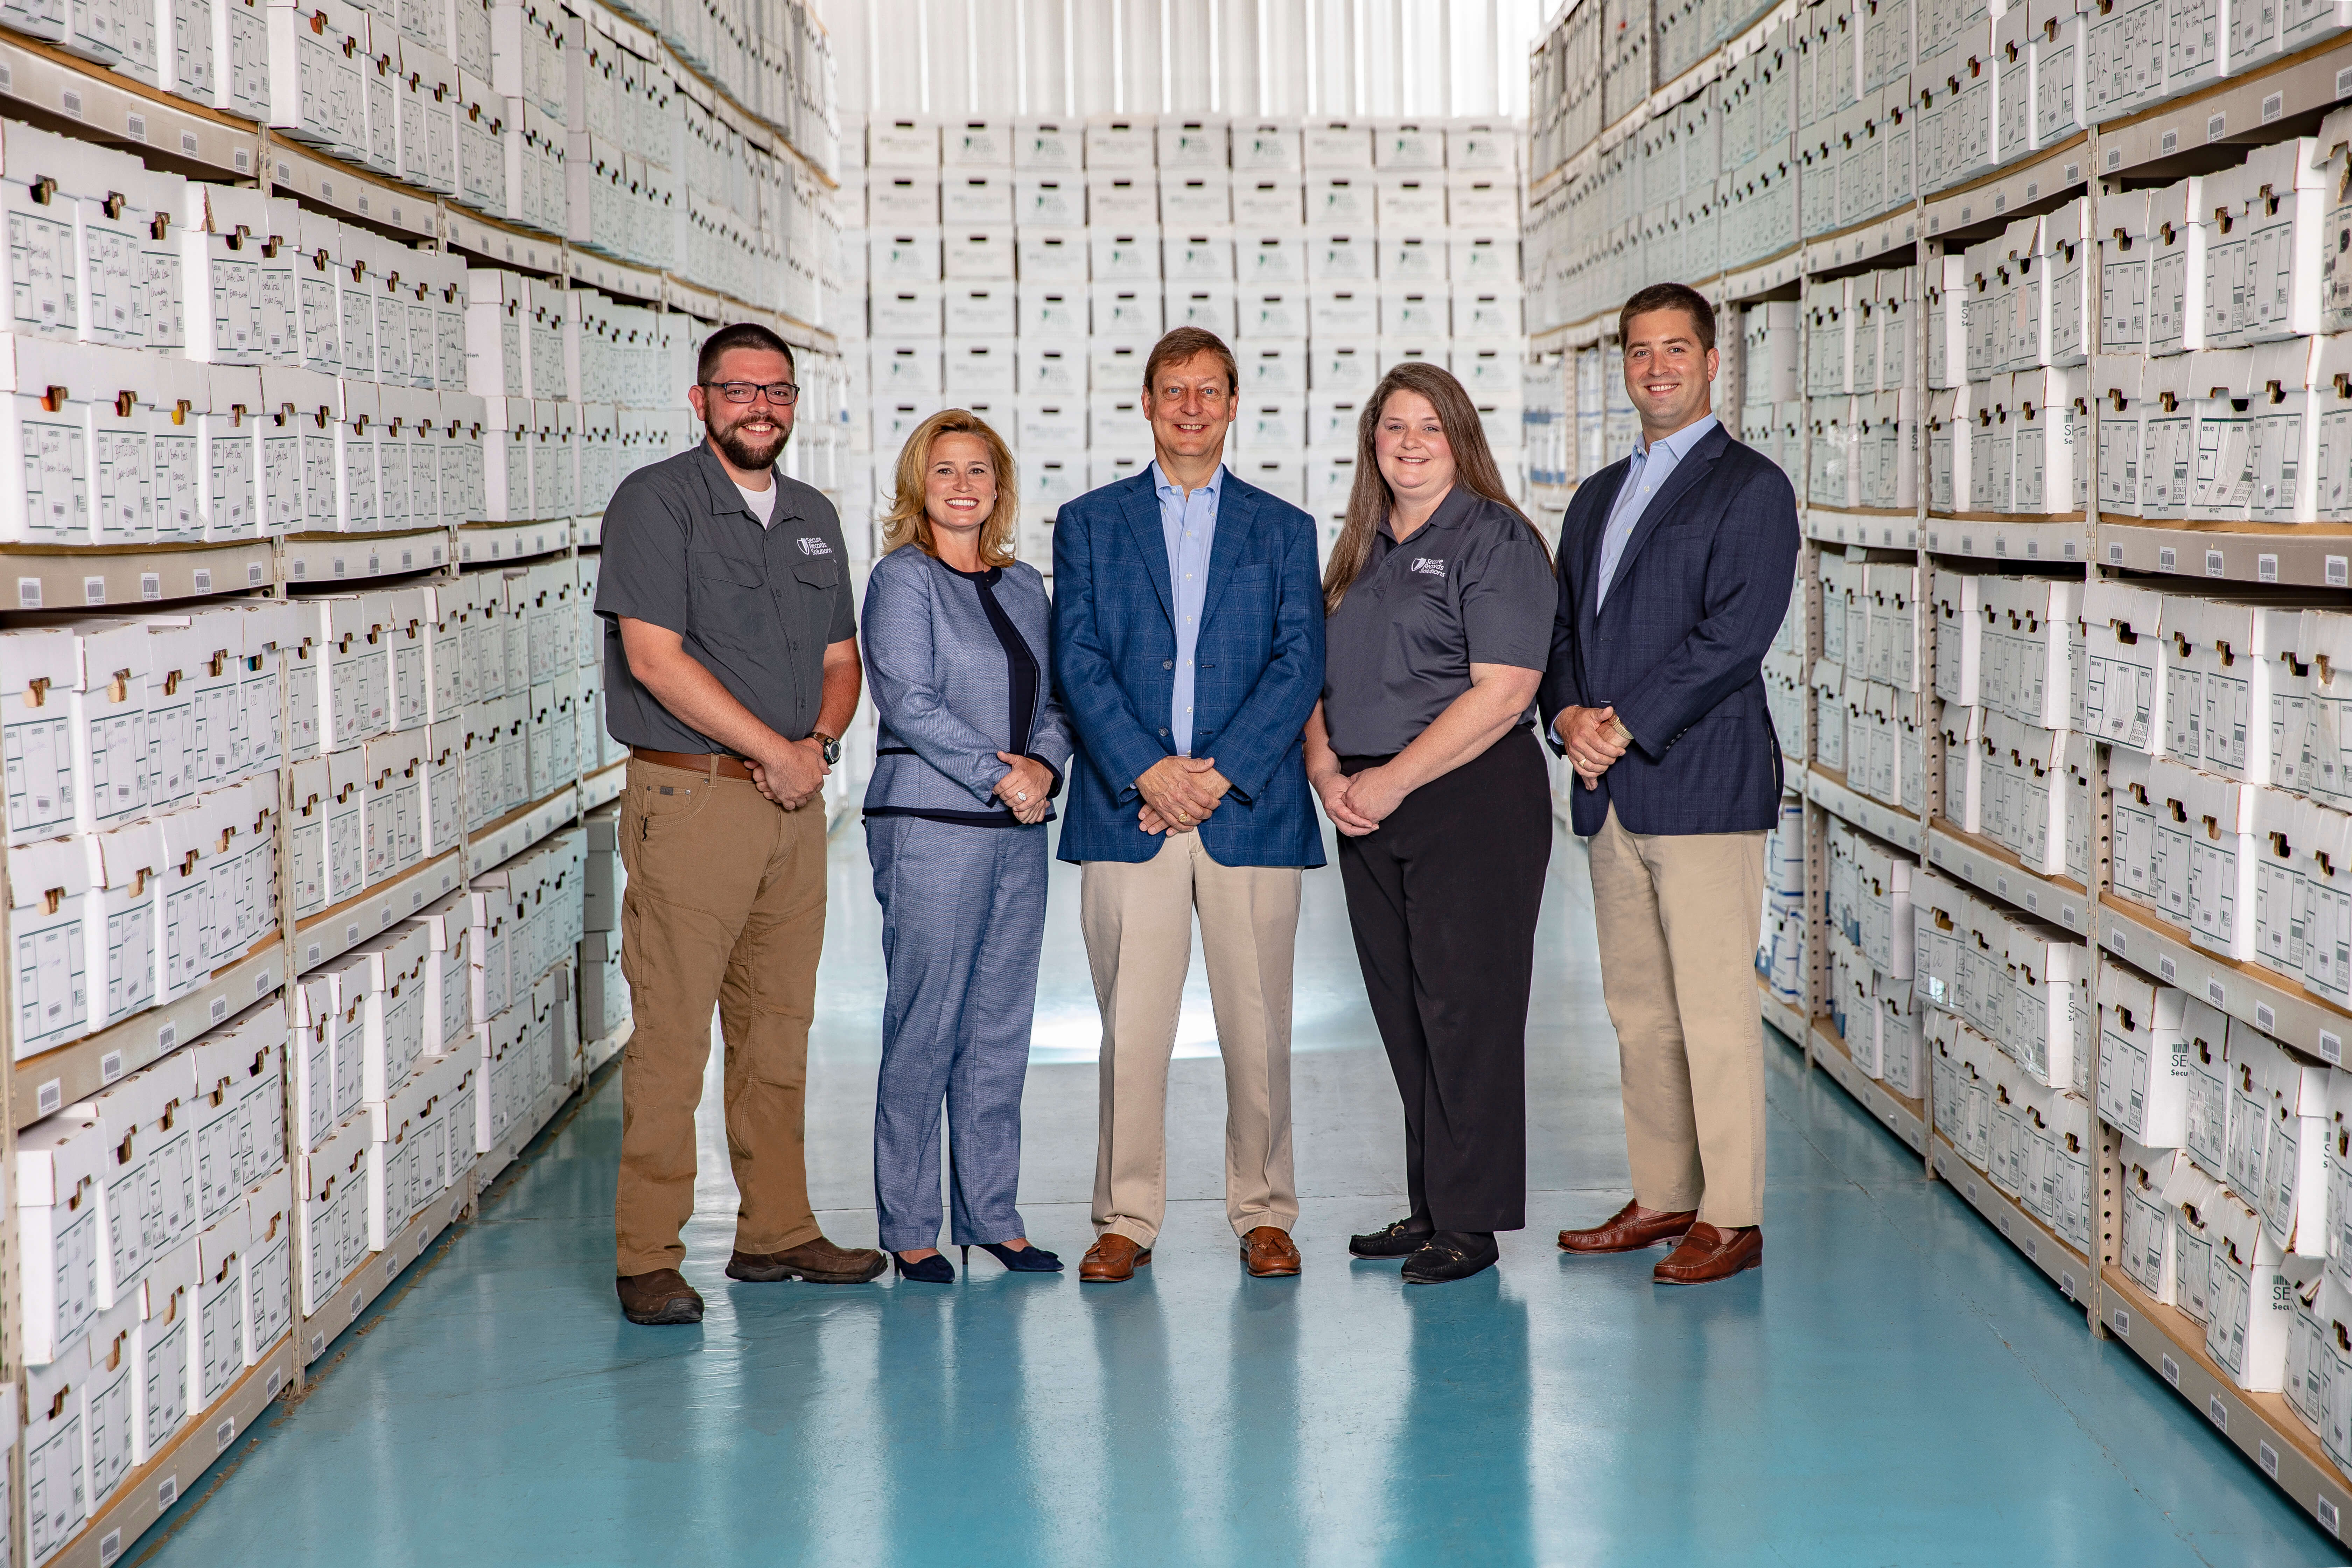 Our team family owned since 2003 secure records solutions 6e9a9209 copy we trust them their staff have the highest level of work ethic and integrity georgia pines ceo heather hatchett malvernweather Gallery